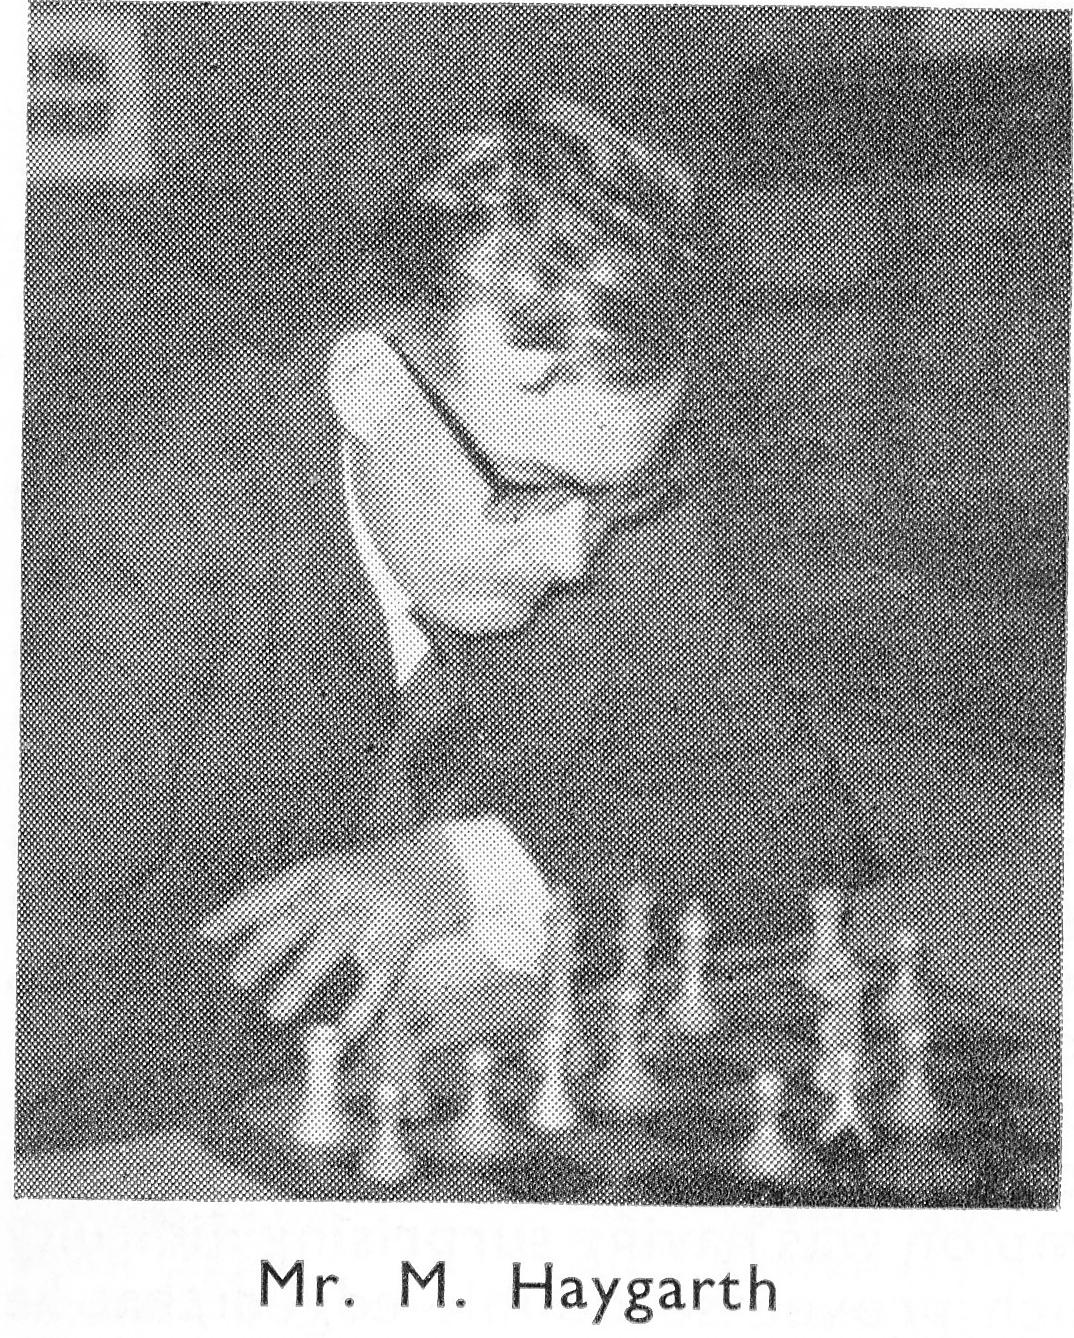 Michael John Haygarth, British Champion, 1964 (from British Chess Magazine, 1964)